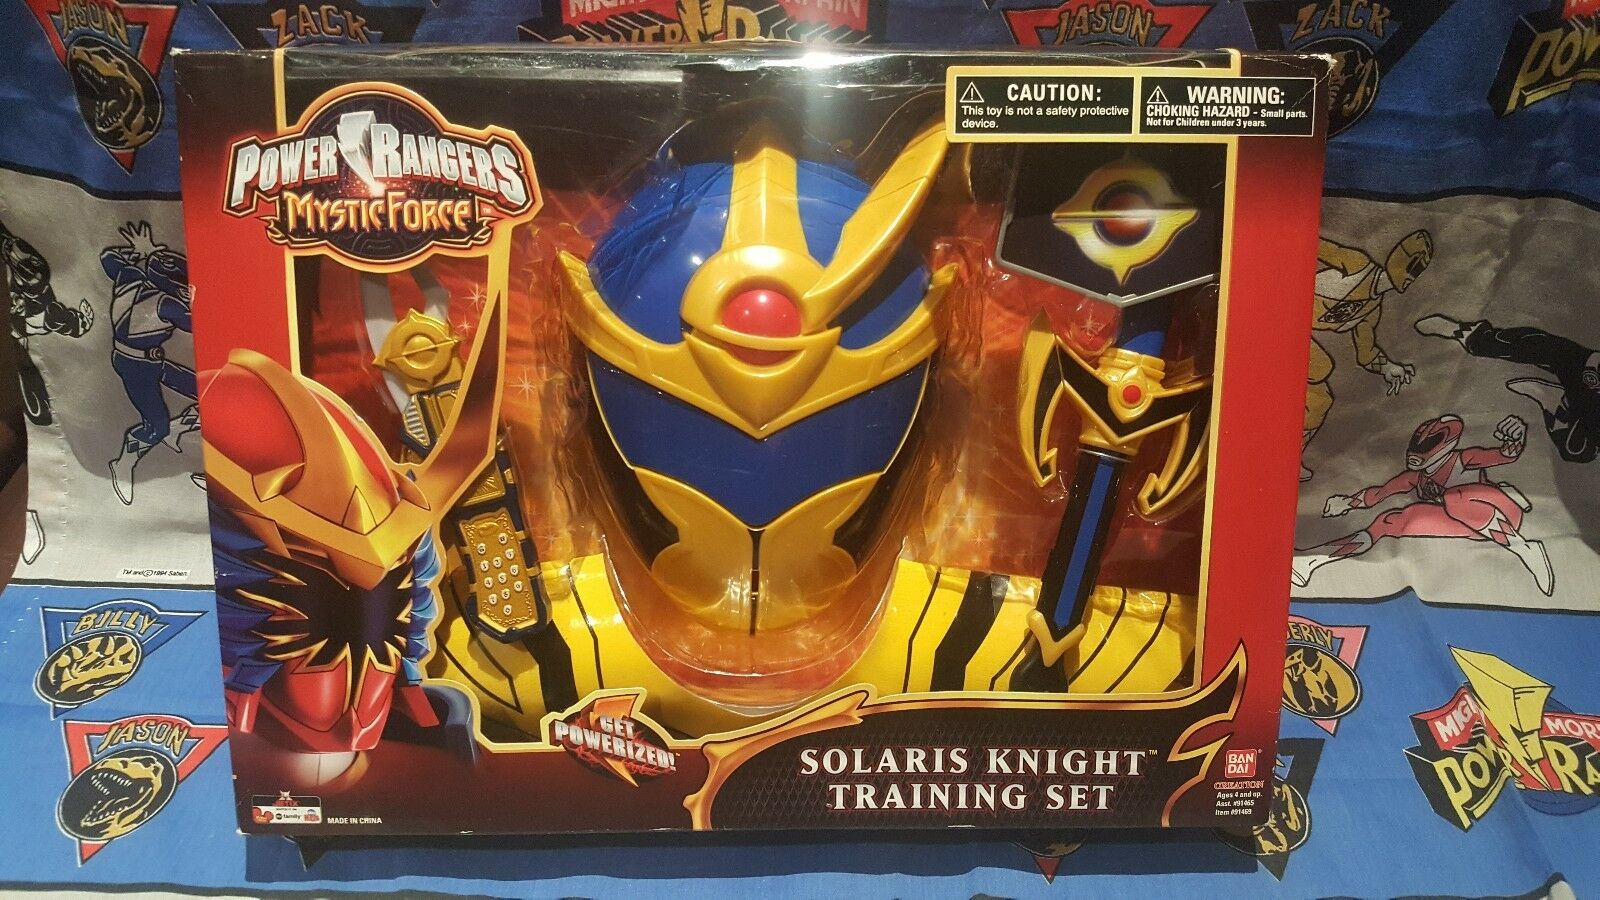 Power Rangers Mystic Force SOLARIS KNIGHT Training Set New 9  Mask Morpher sword